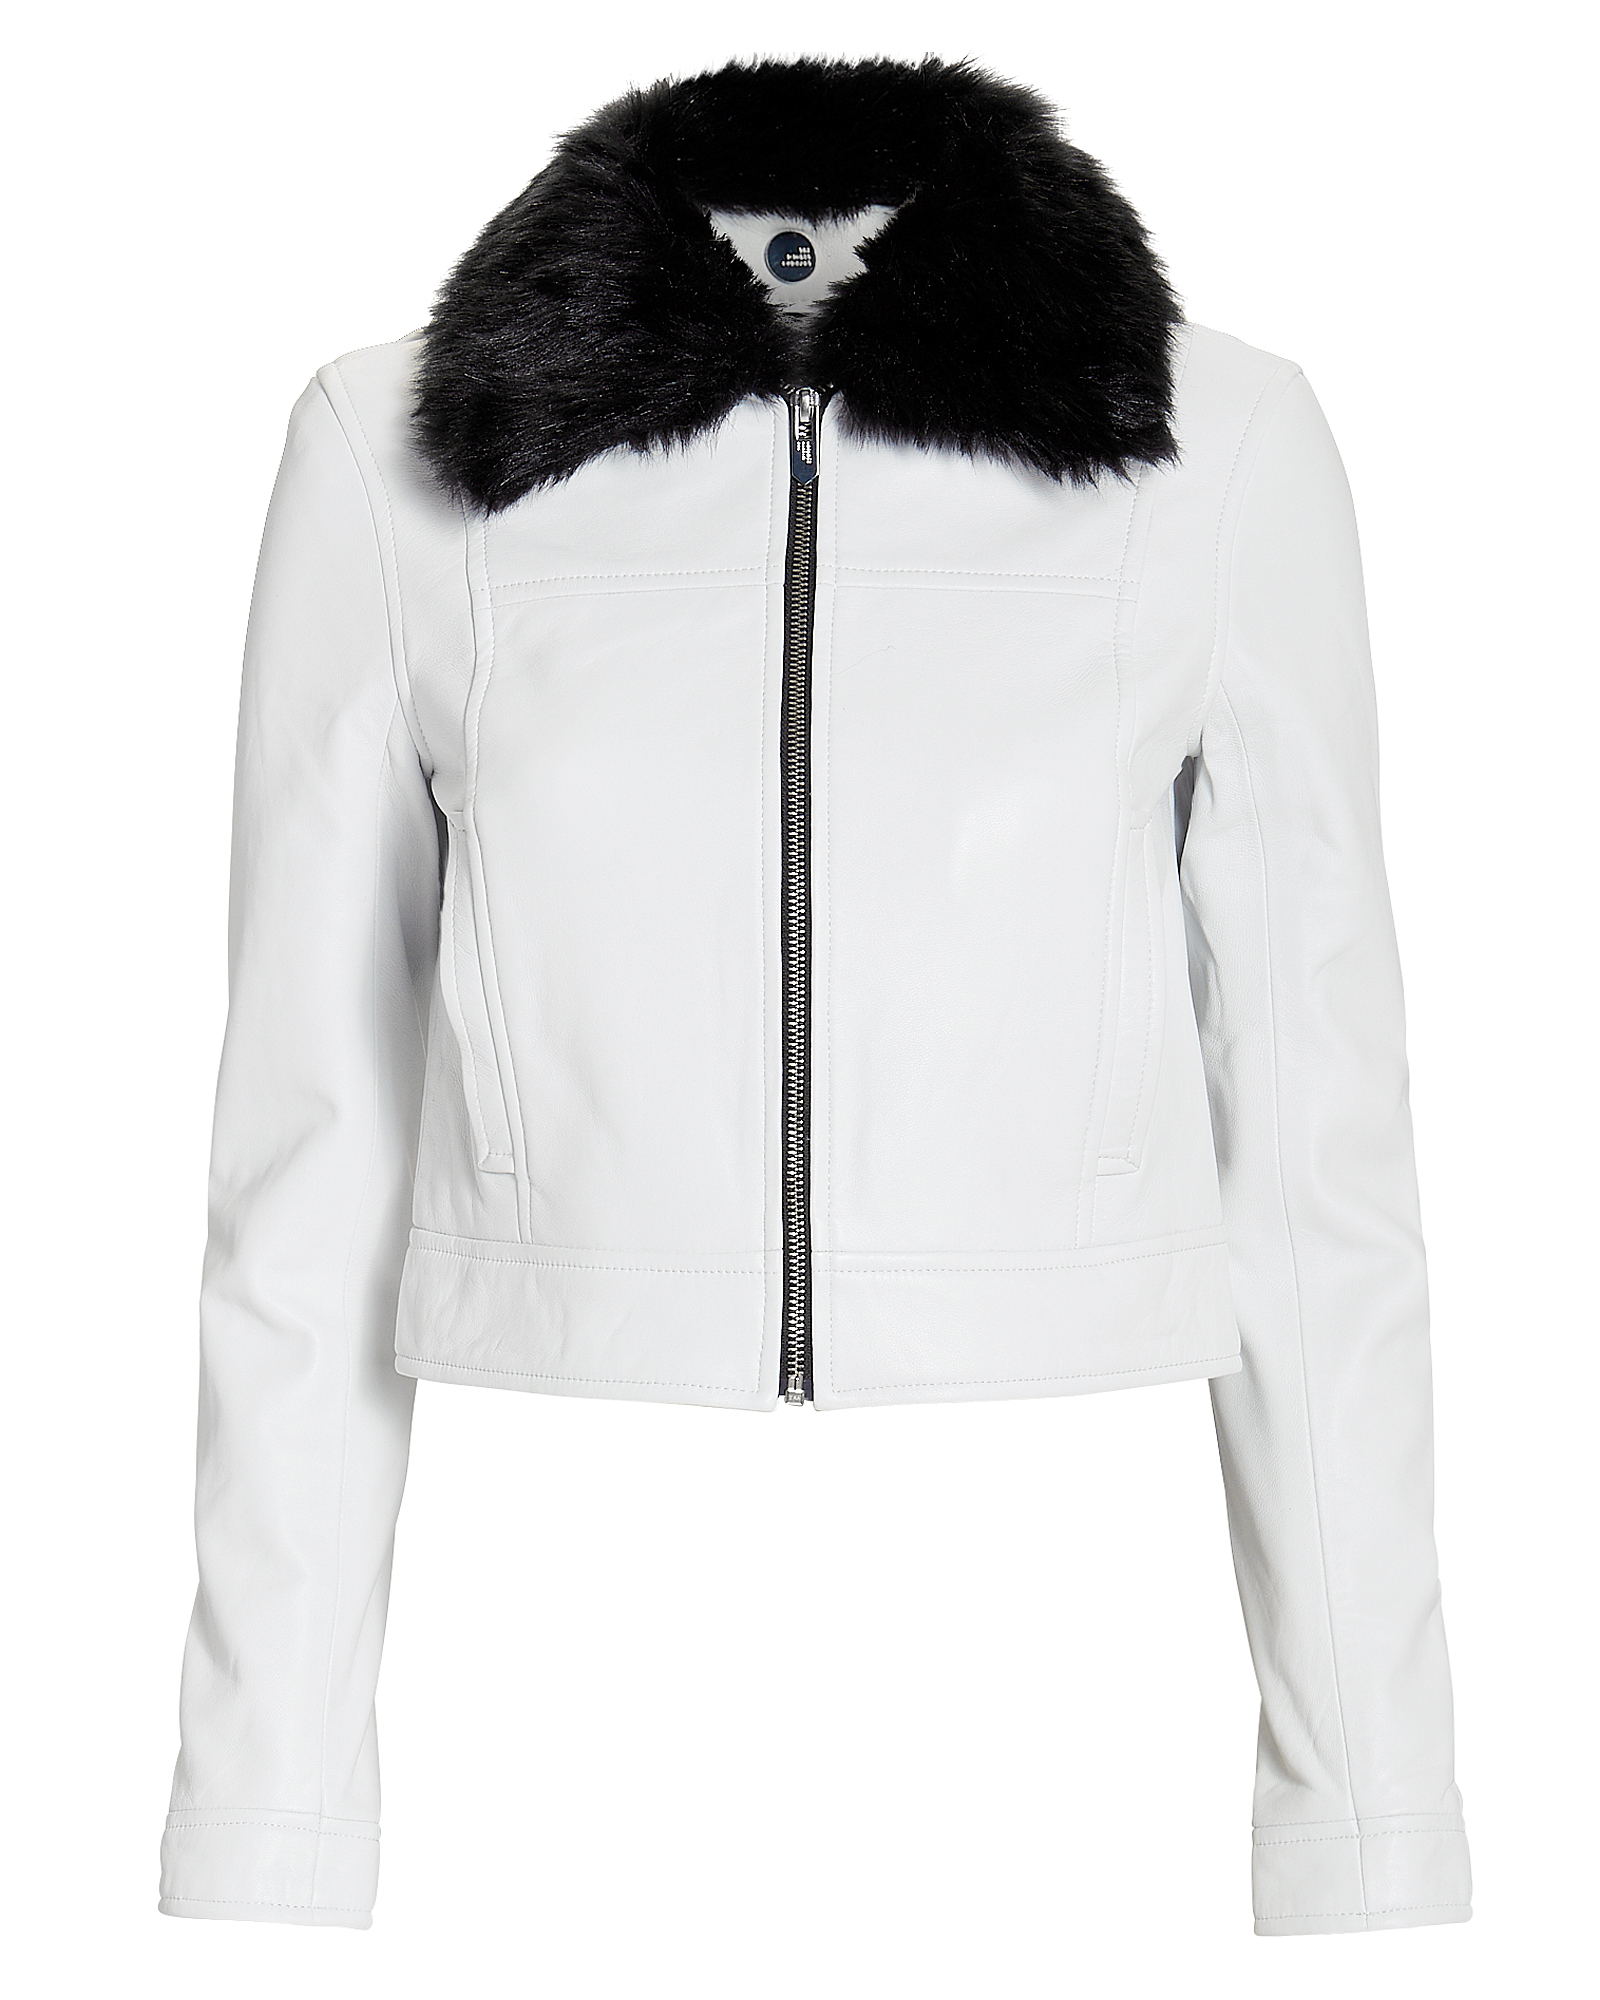 THE MIGHTY COMPANY The Mighty Comany Lincoln Faux Fur Collar Jacket White/Black